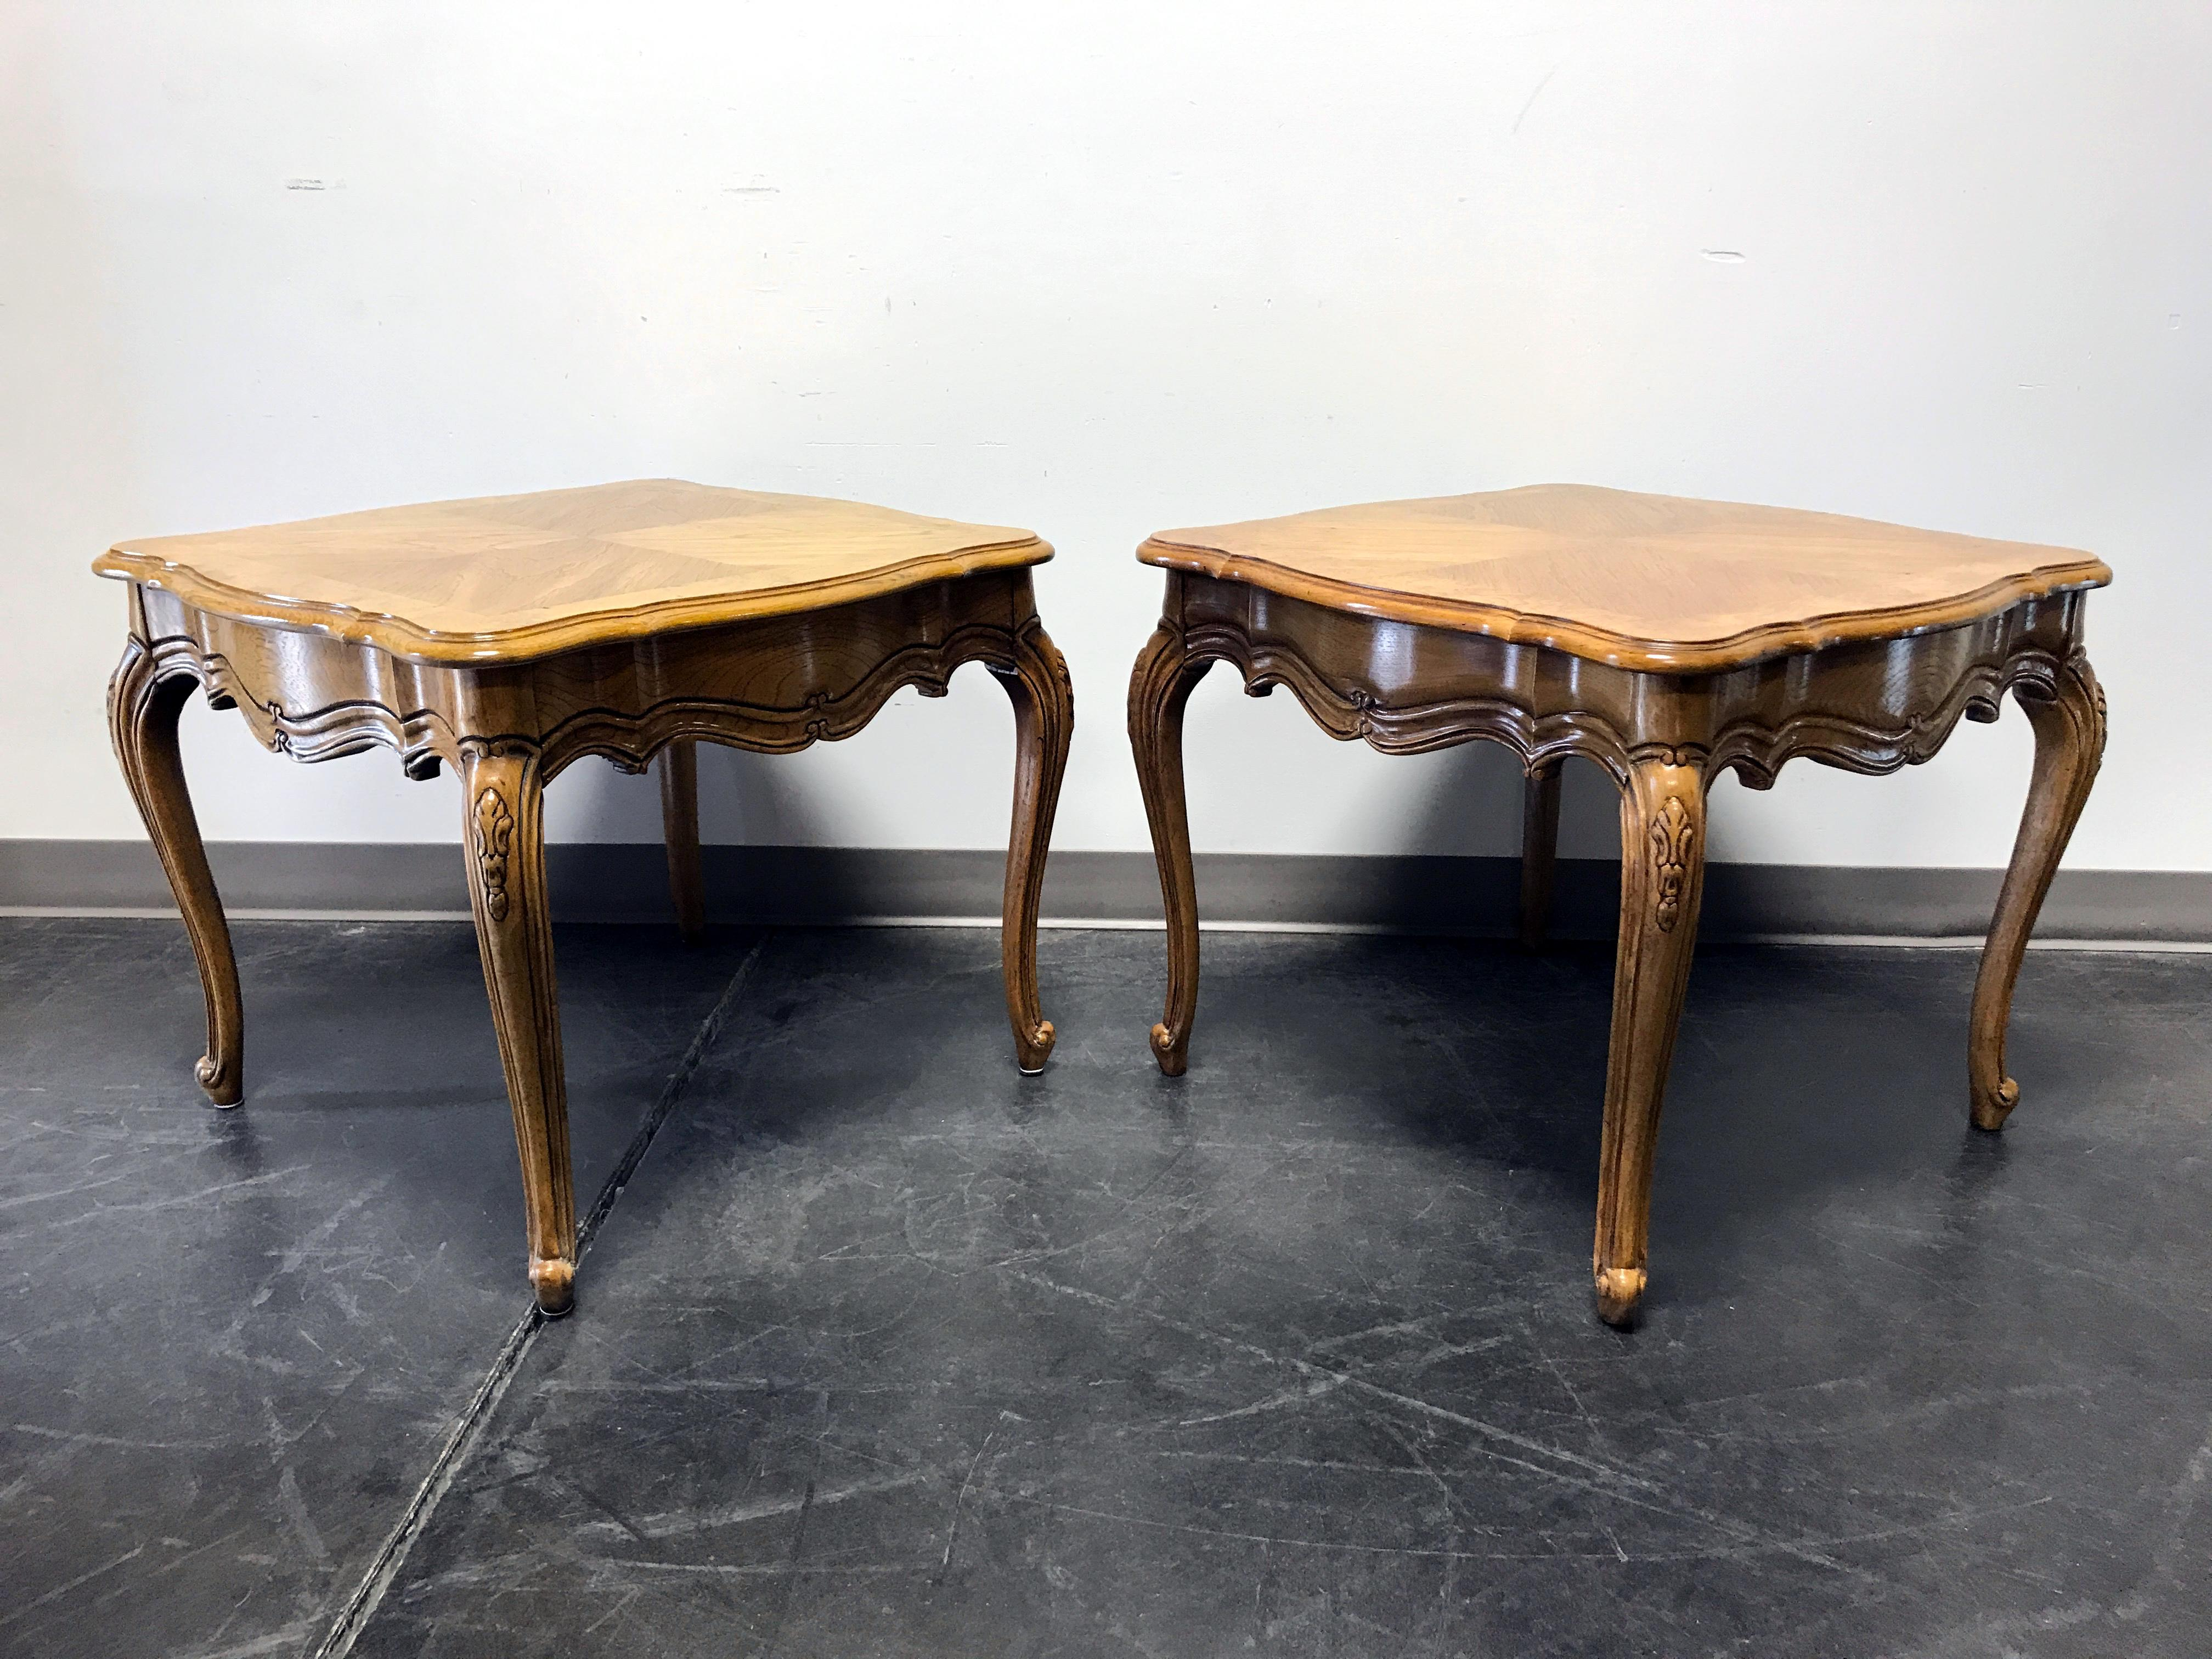 Here Is A Pair Of French Country Style Lamp Tables From High Quality  Furniture Maker